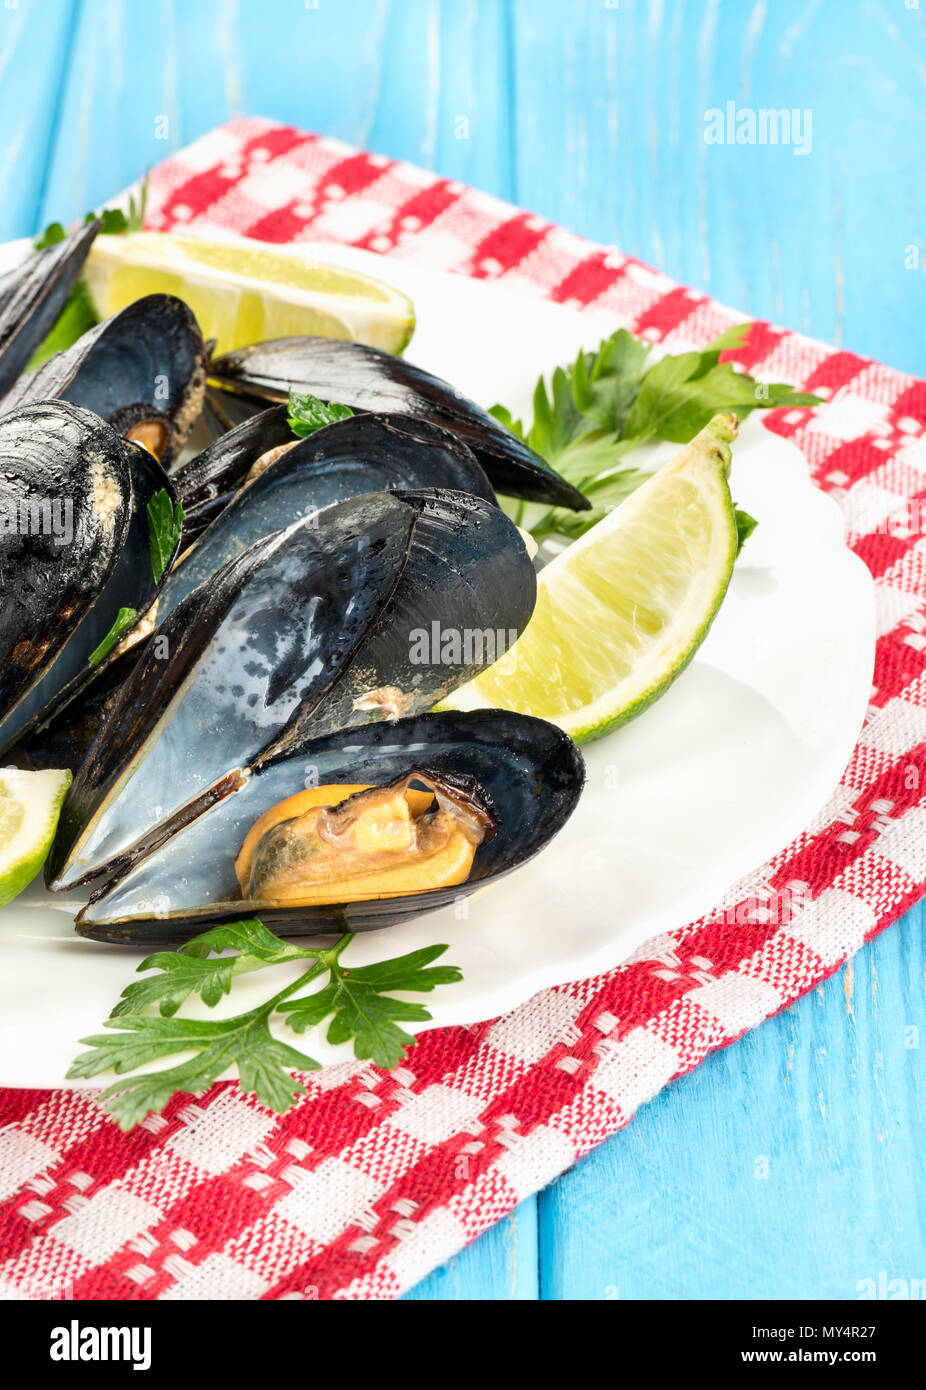 Part of dish with cooked mussels and lime on the plate and on the towel - Stock Image